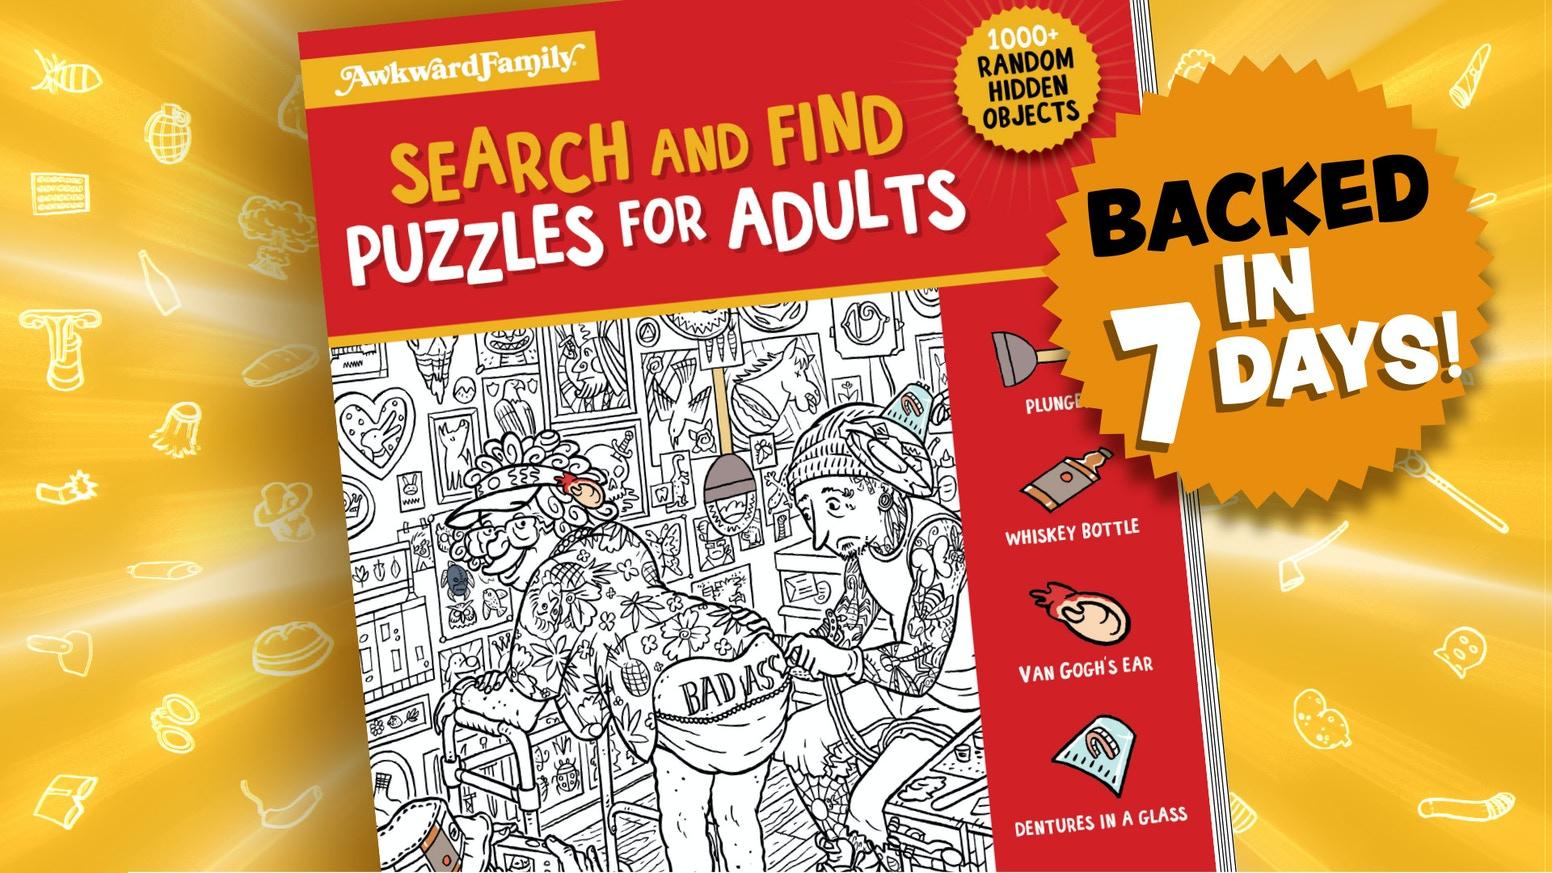 A humorous twist on search & find puzzles that's designed for (immature) grown-ups.